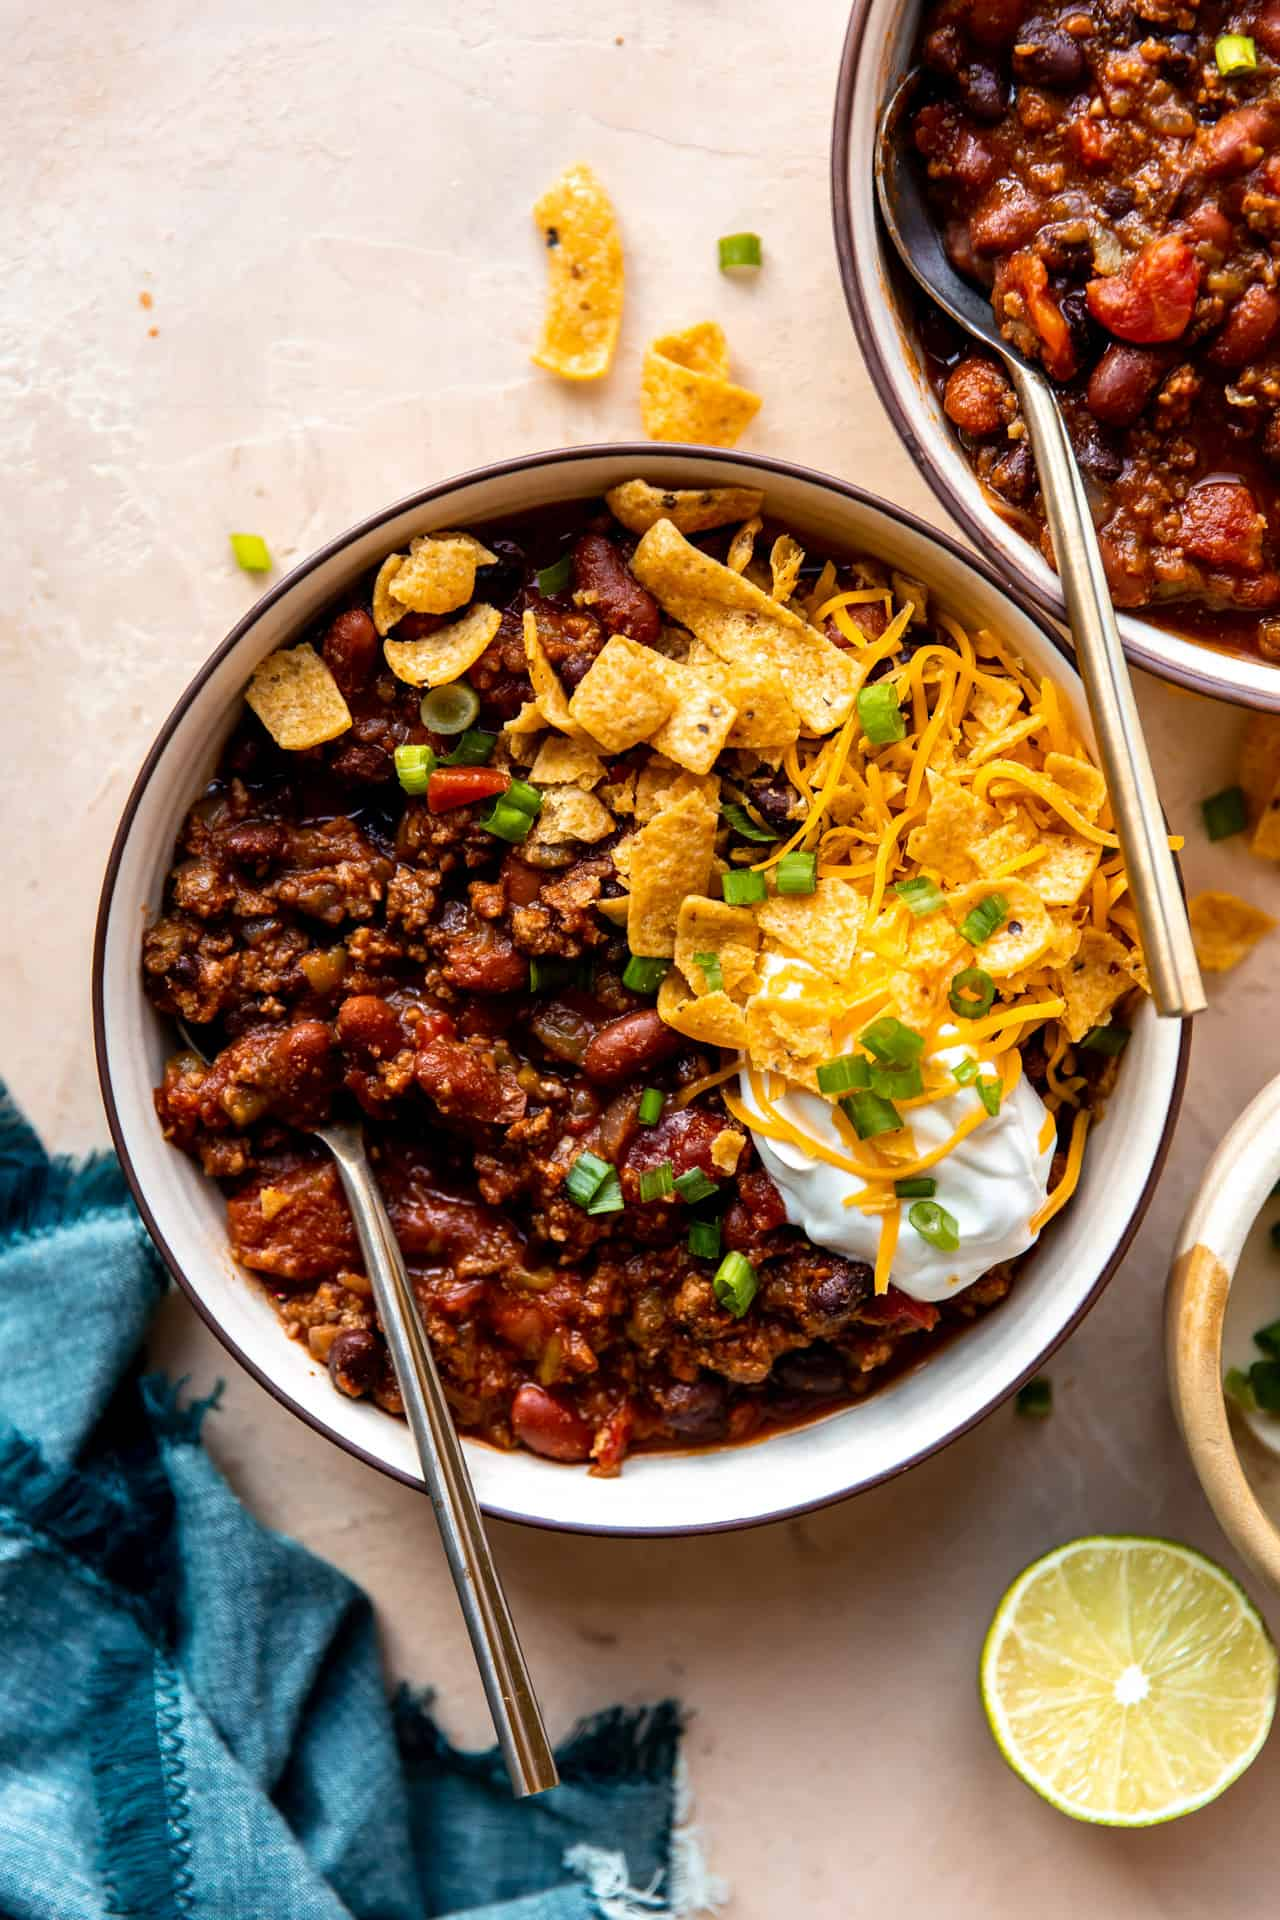 Overhead view of a bowl of chili with toppings.